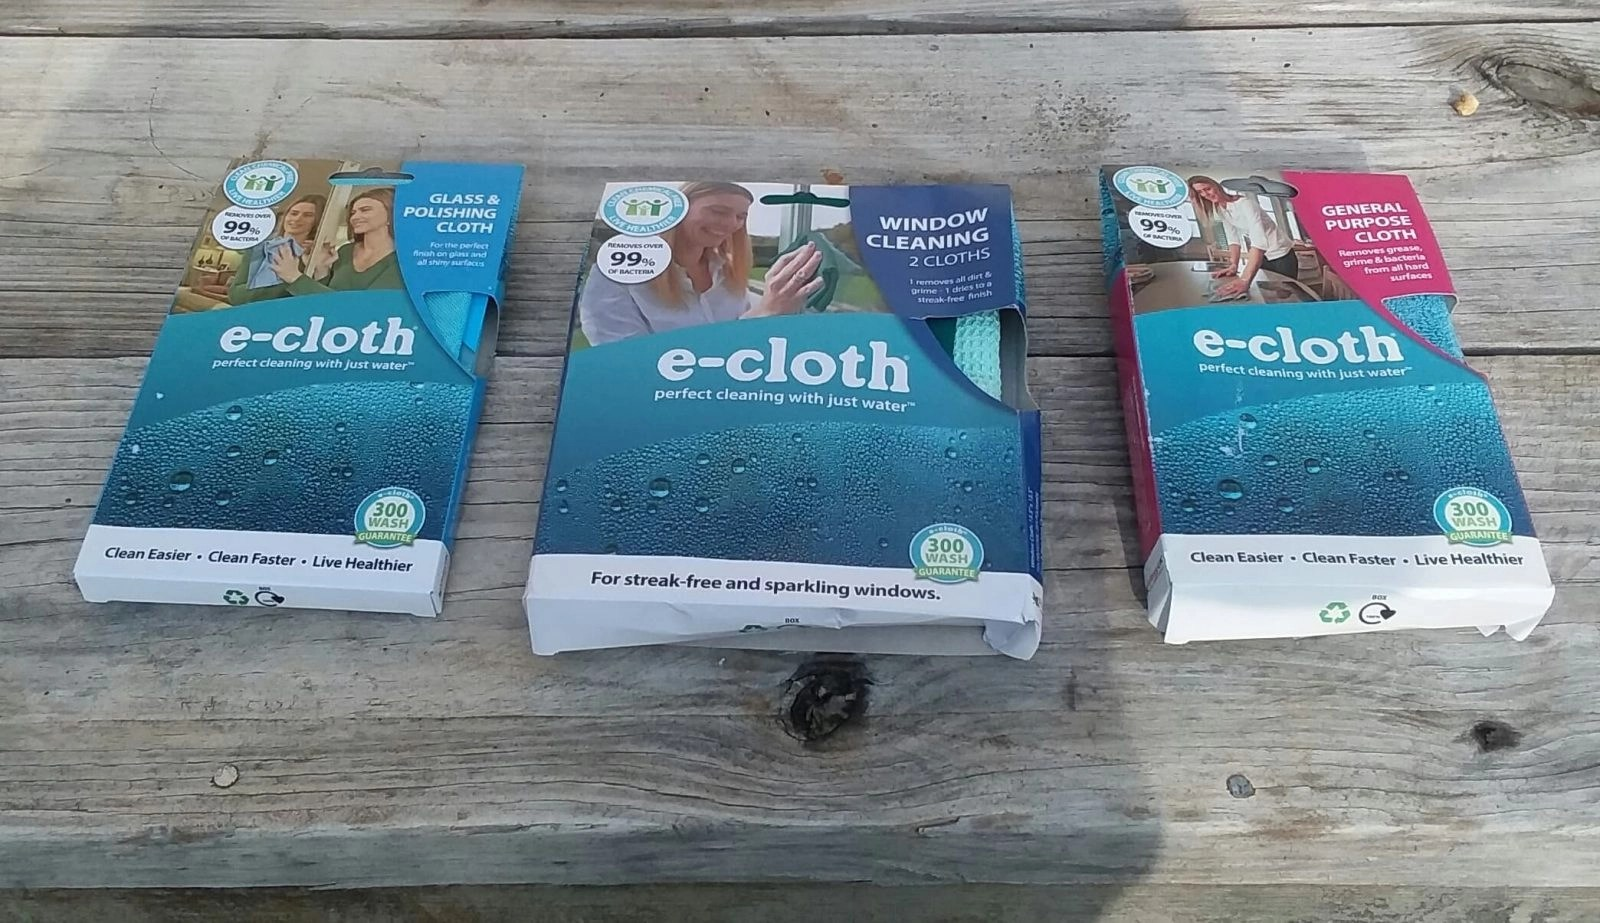 Ecloth Products